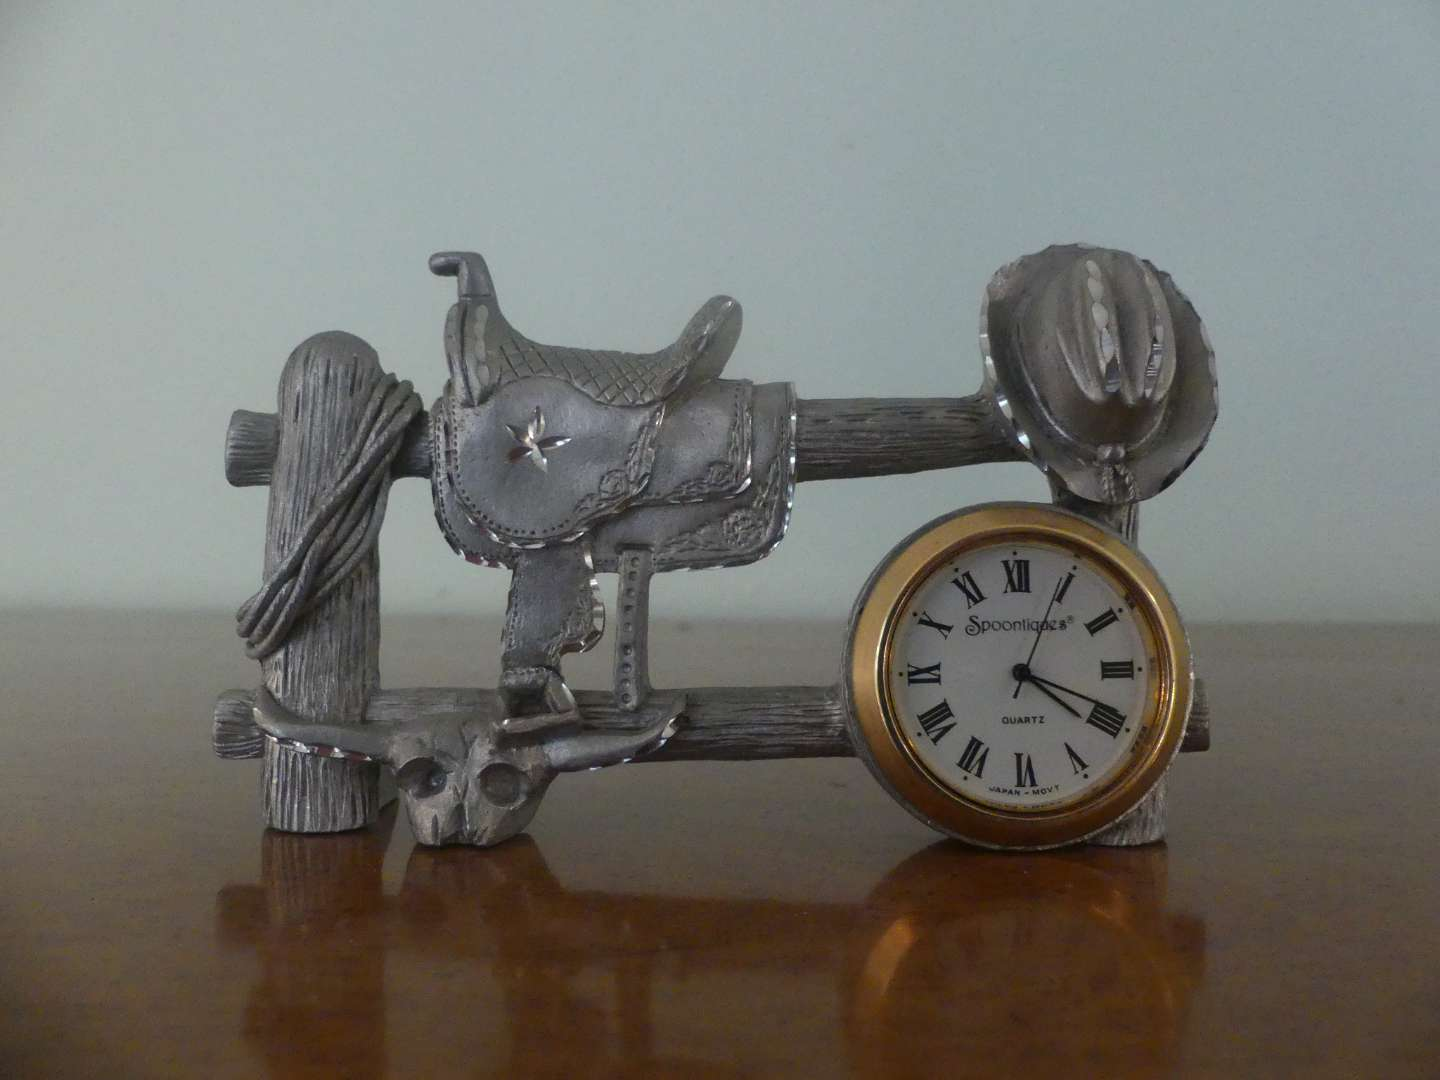 Lot #104 Spoontiques Pewter Hitching Post Novelty Clock #7131